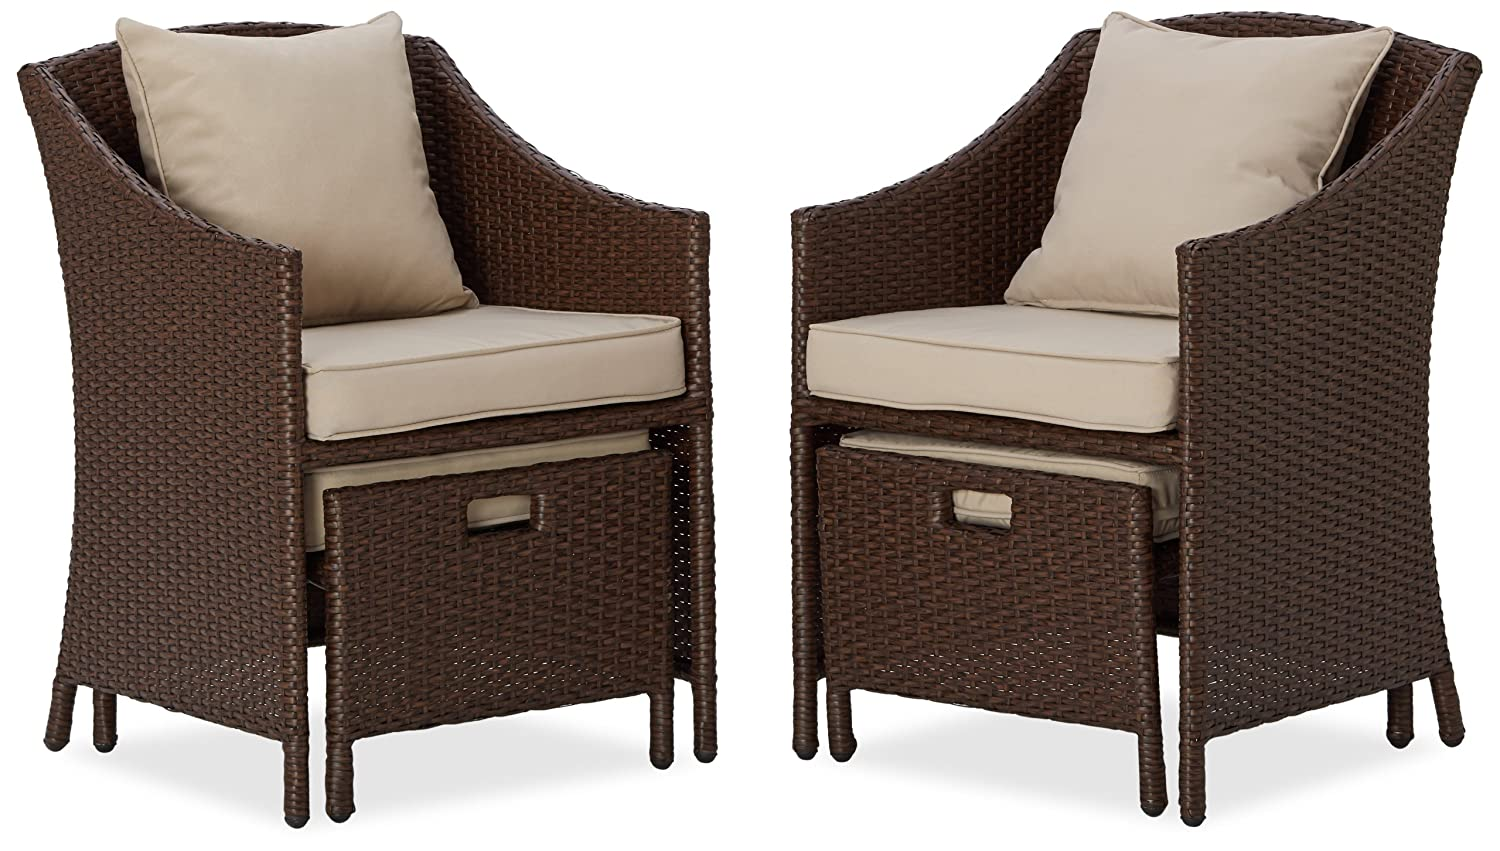 outdoor chairs with ottomans louis 15th 5pc patio set table rattan weather